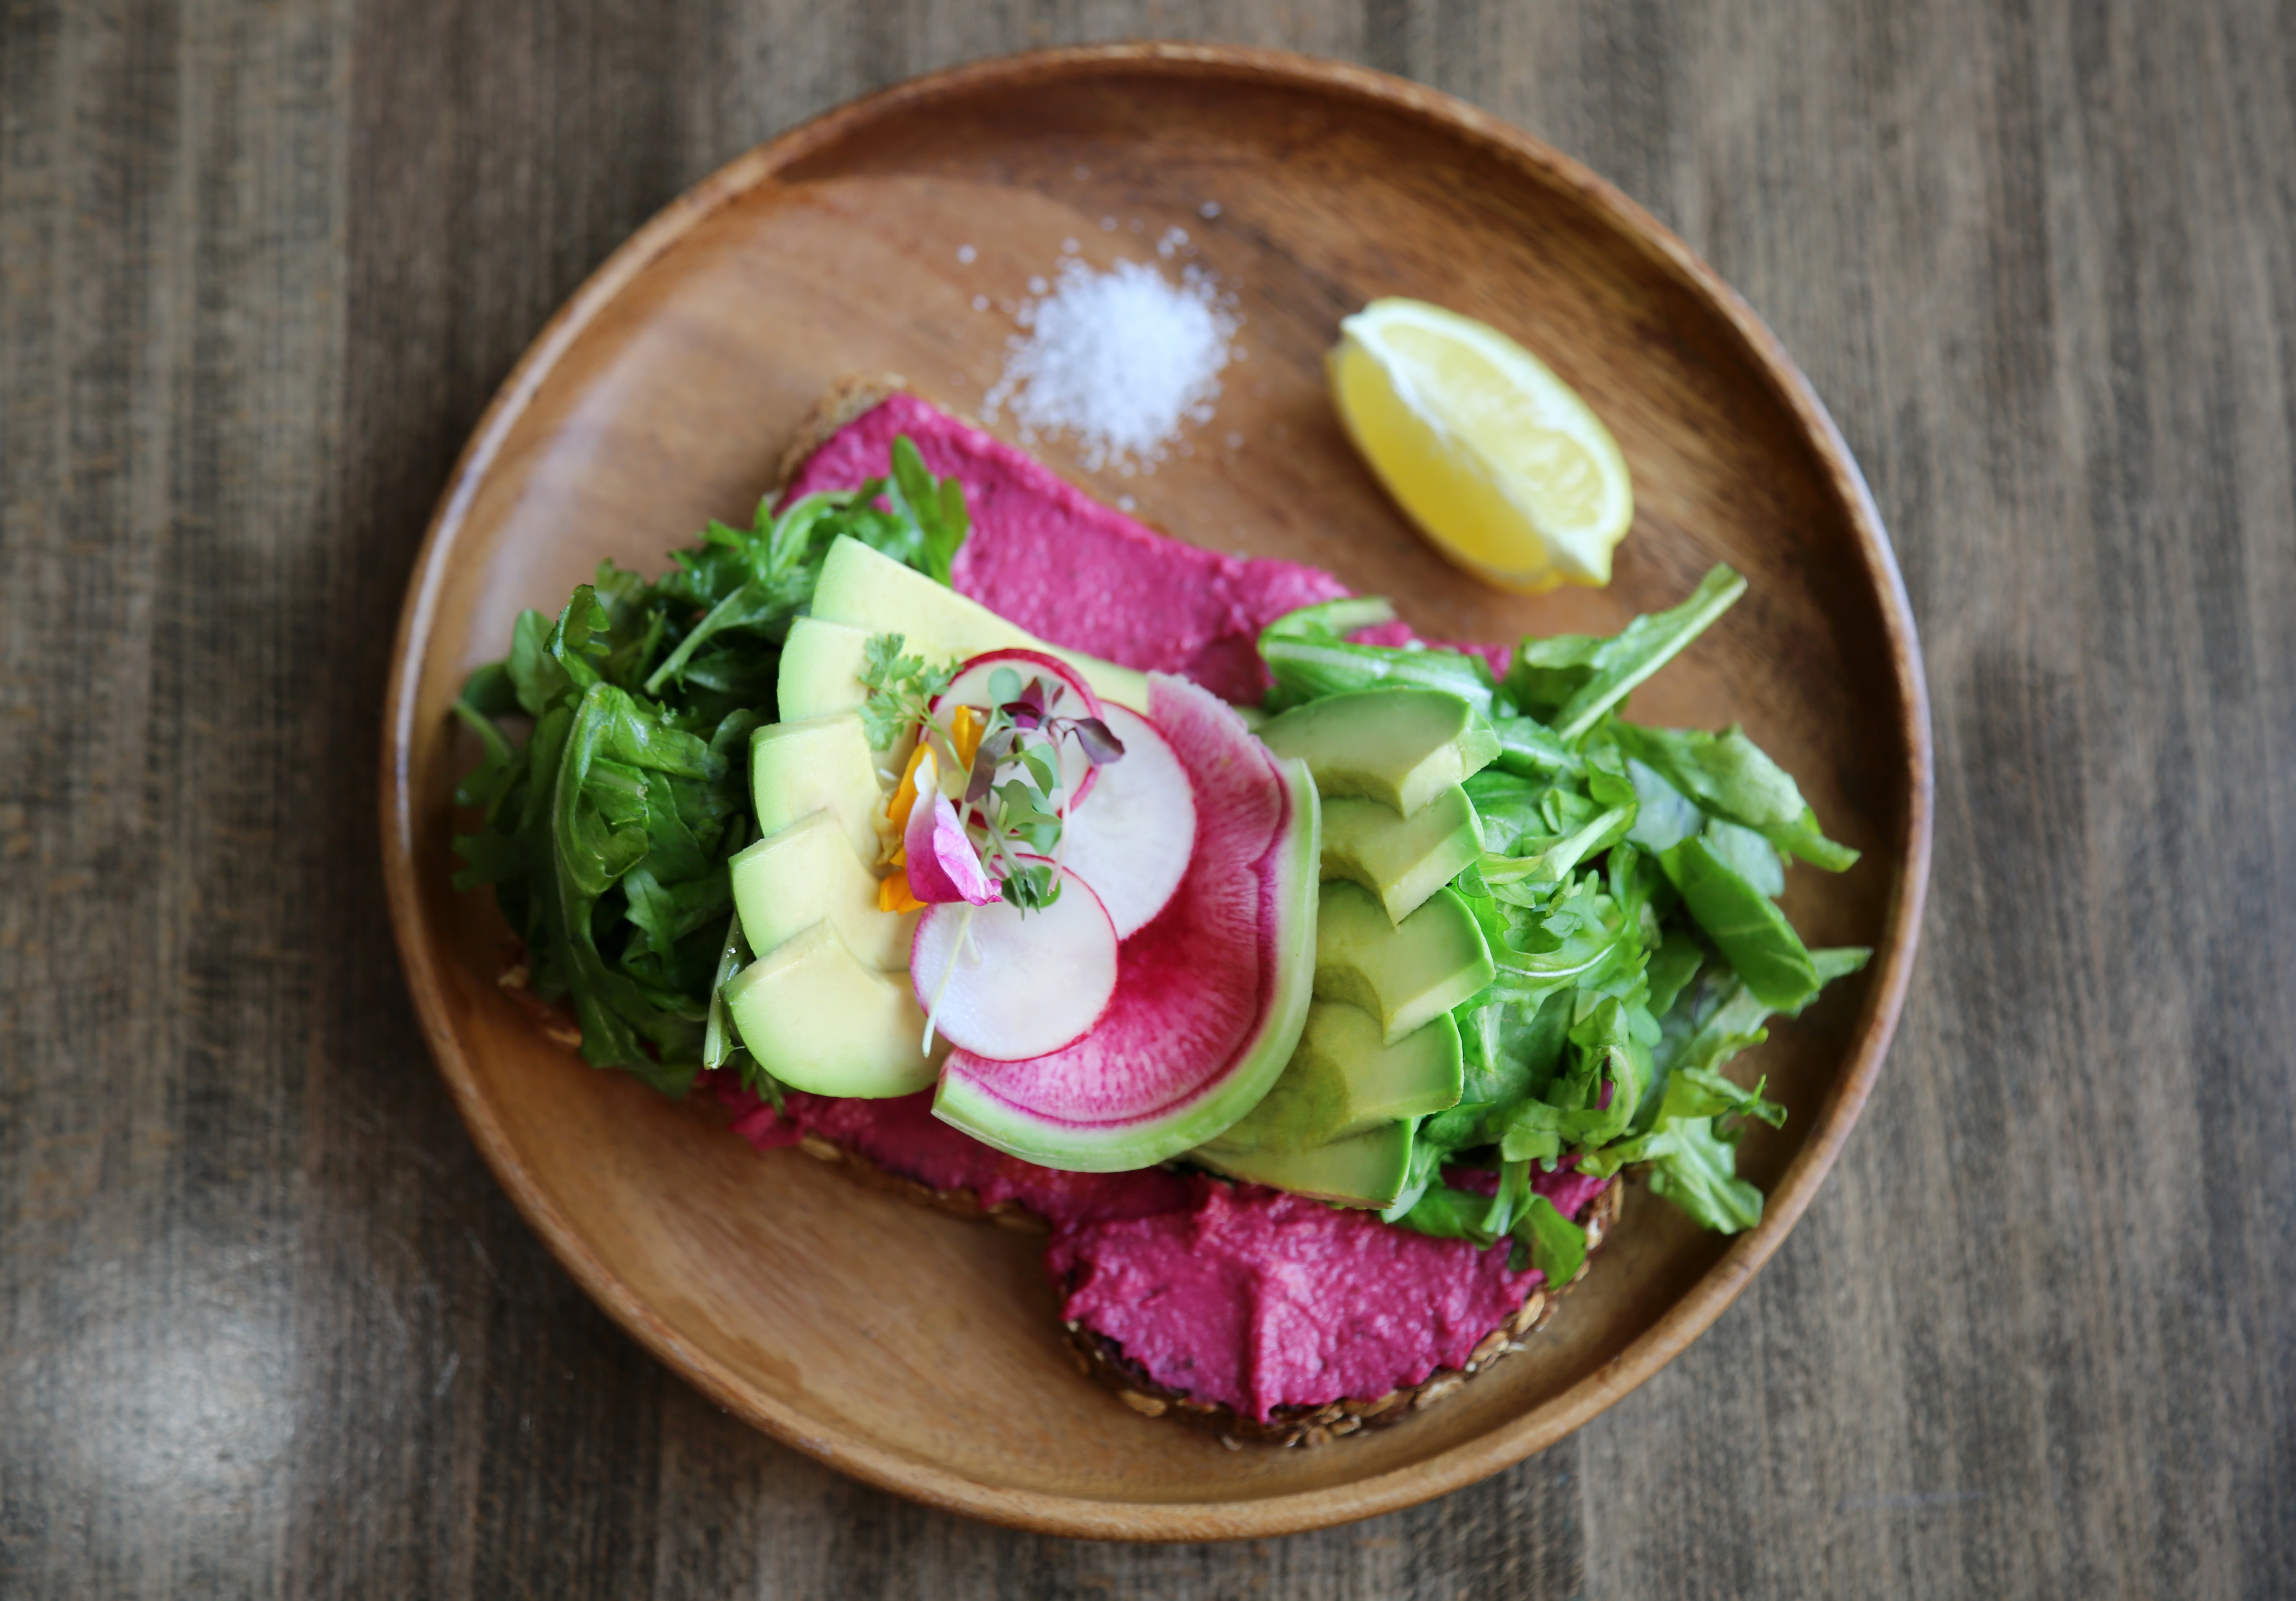 sliced cabbage, avocado and lemon on plate